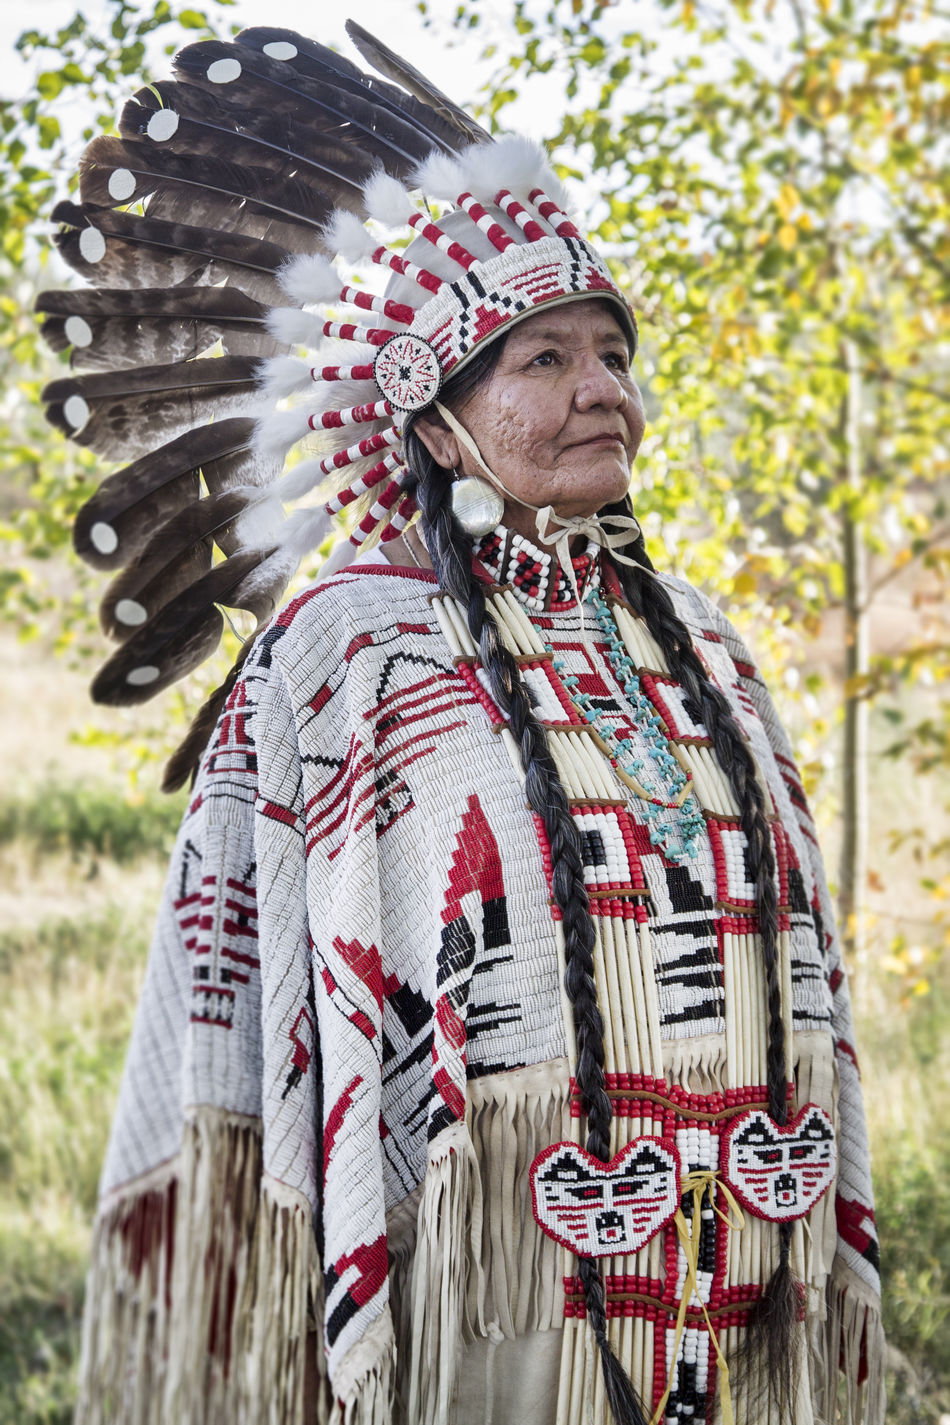 Beautiful stock photos of native american, cultures, traditional clothing, lifestyles, outdoors